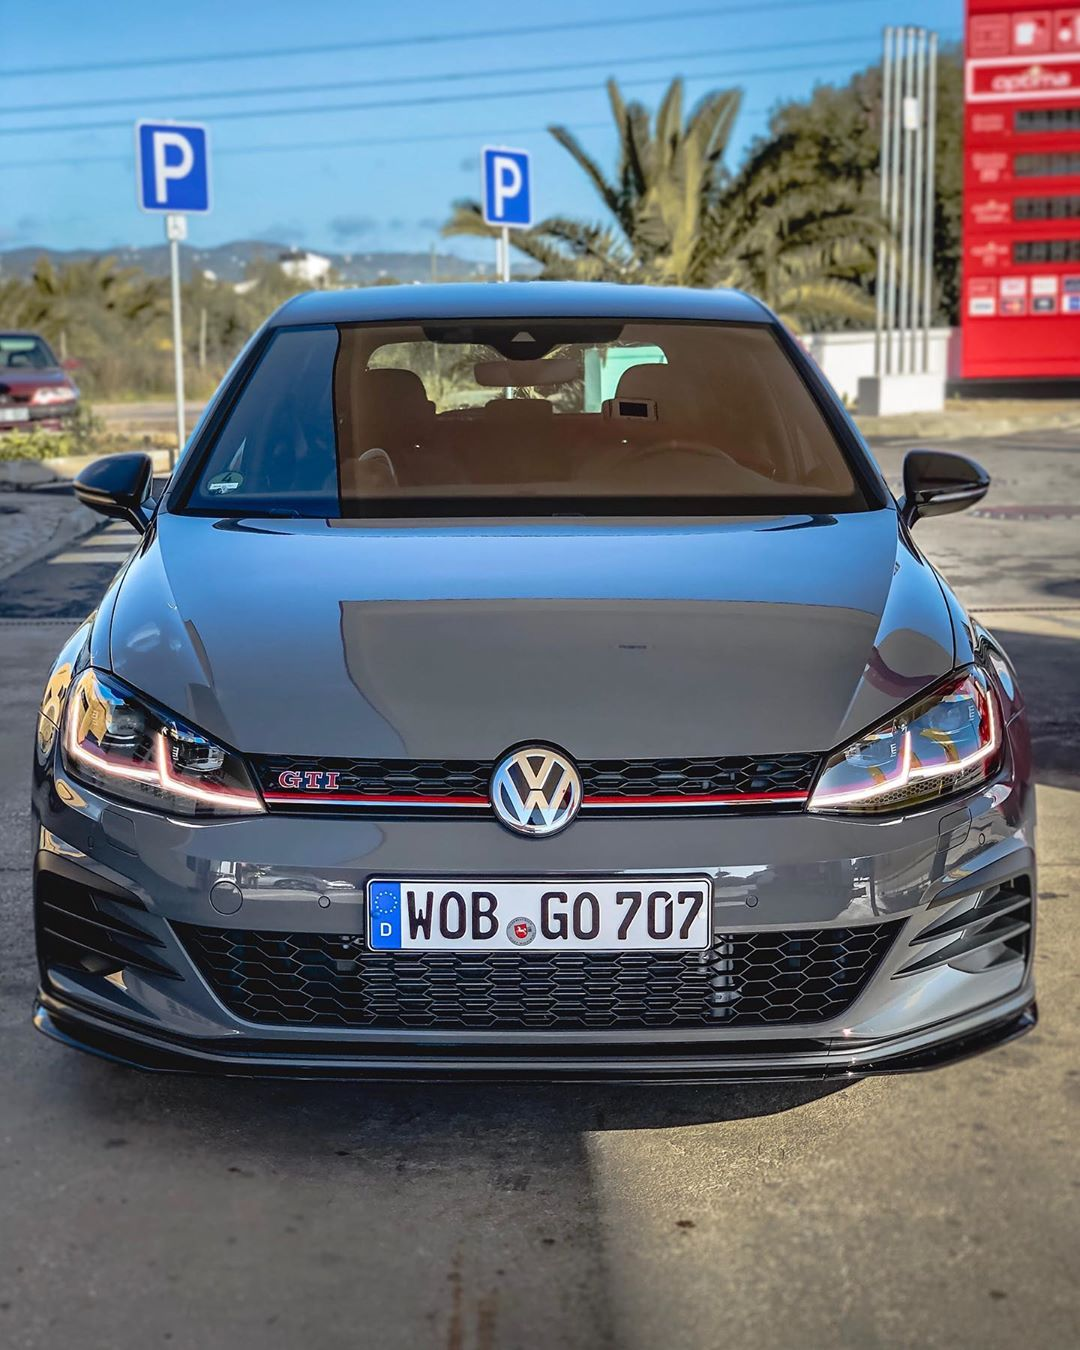 Looking forward to get that TCR on the German Autobahn😋🤘 #volkswagen #golfgti #golfgtitcr #gti #gtitcr #golf7gti #gticlubsport #automanntv #portugal